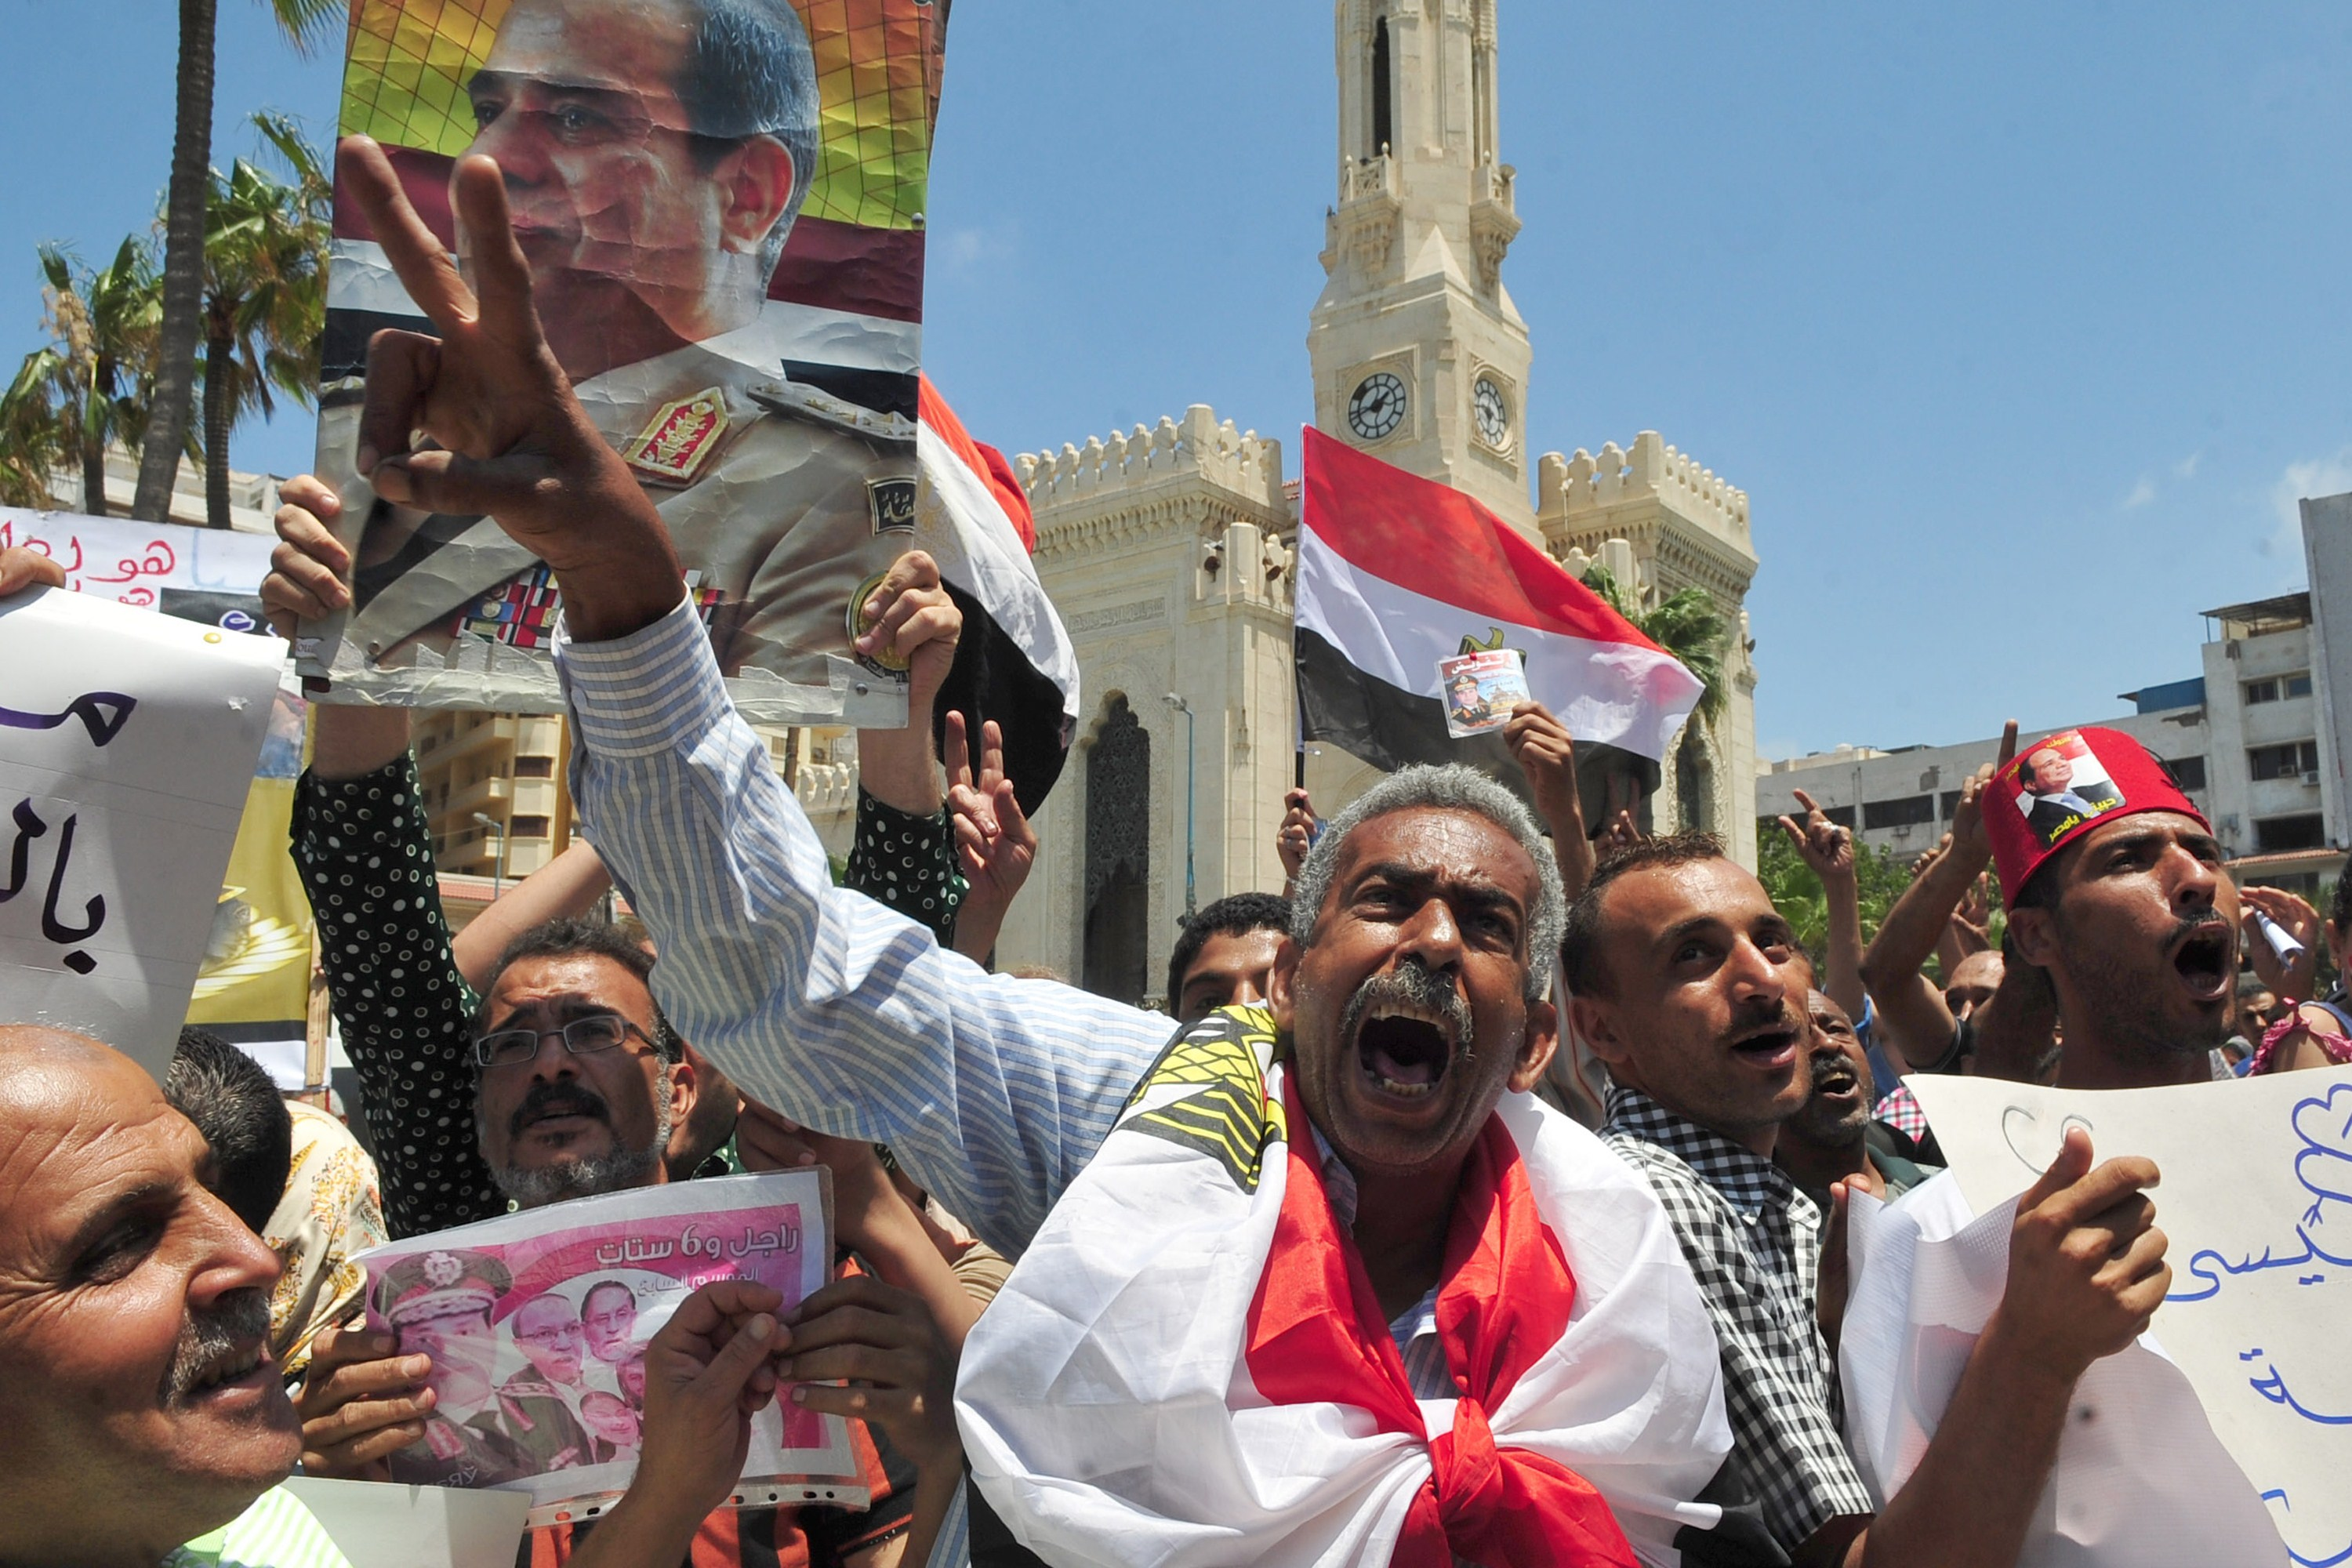 Egyptian protesters shout slogans and hold portraits of Egypt's new President Abdel Fattah al-Sisi on June 6, 2014, during a demonstration to show him their support, in the Mediterranean port city of Alexandria. On June 3, the electoral commission declared Sisi won 96.91 percent of the vote with a turnout of 47.5 percent, nearly a year after he toppled the country's first freely elected leader, Islamist Mohamed Morsi.  (AFP PHOTO / STR)